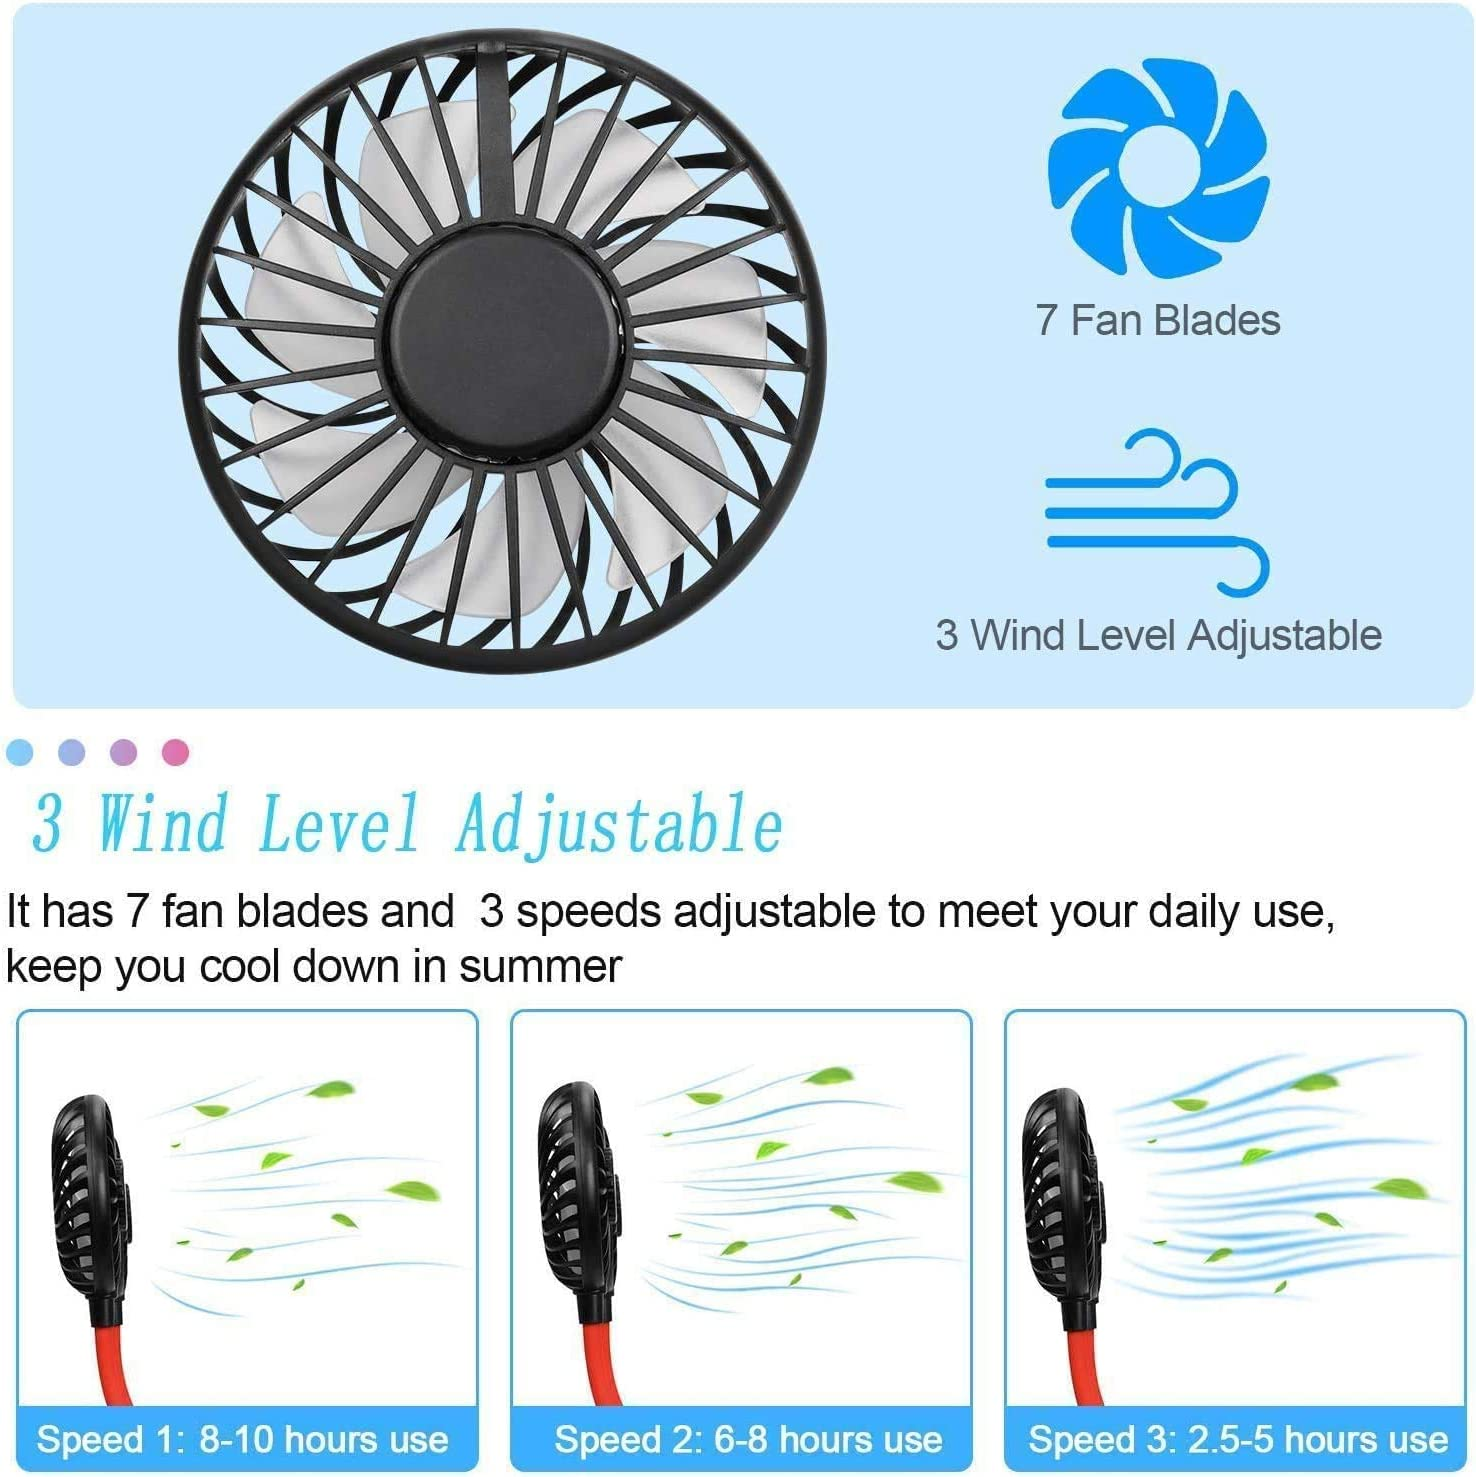 Personal Sport Neck Fan Portable, XUNMEJ Hand Free Mini USB Rechargeable Neckband Fans with 6-13 Hrs Runtime 2000mAh 3 Speed 360 Degrees Free Rotation for Aromatherapy Cooking Outdoor Travel, Black